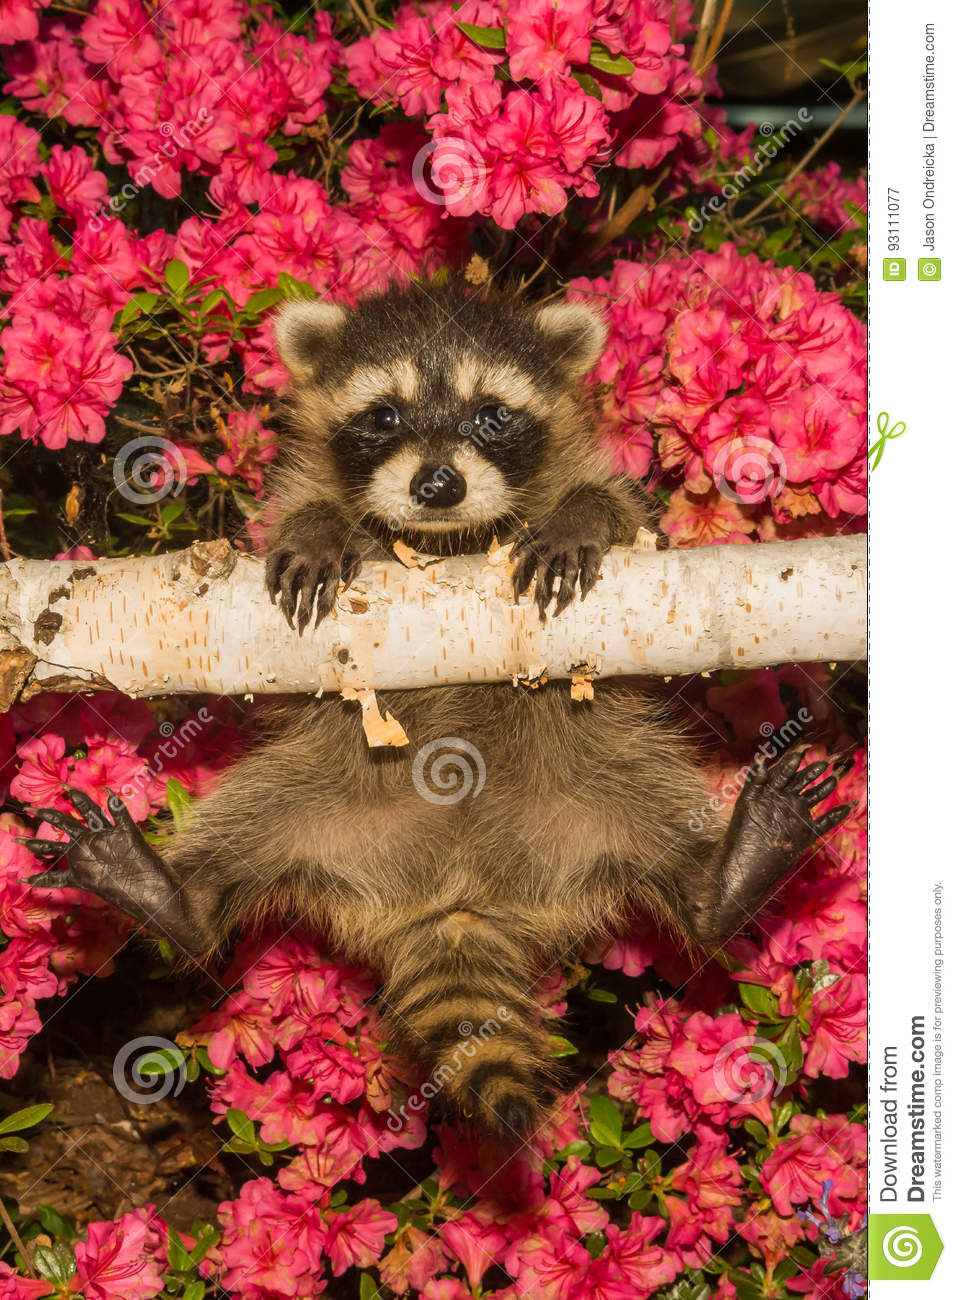 Hang in there stock image. Image of flora, holding, curious - 93111077